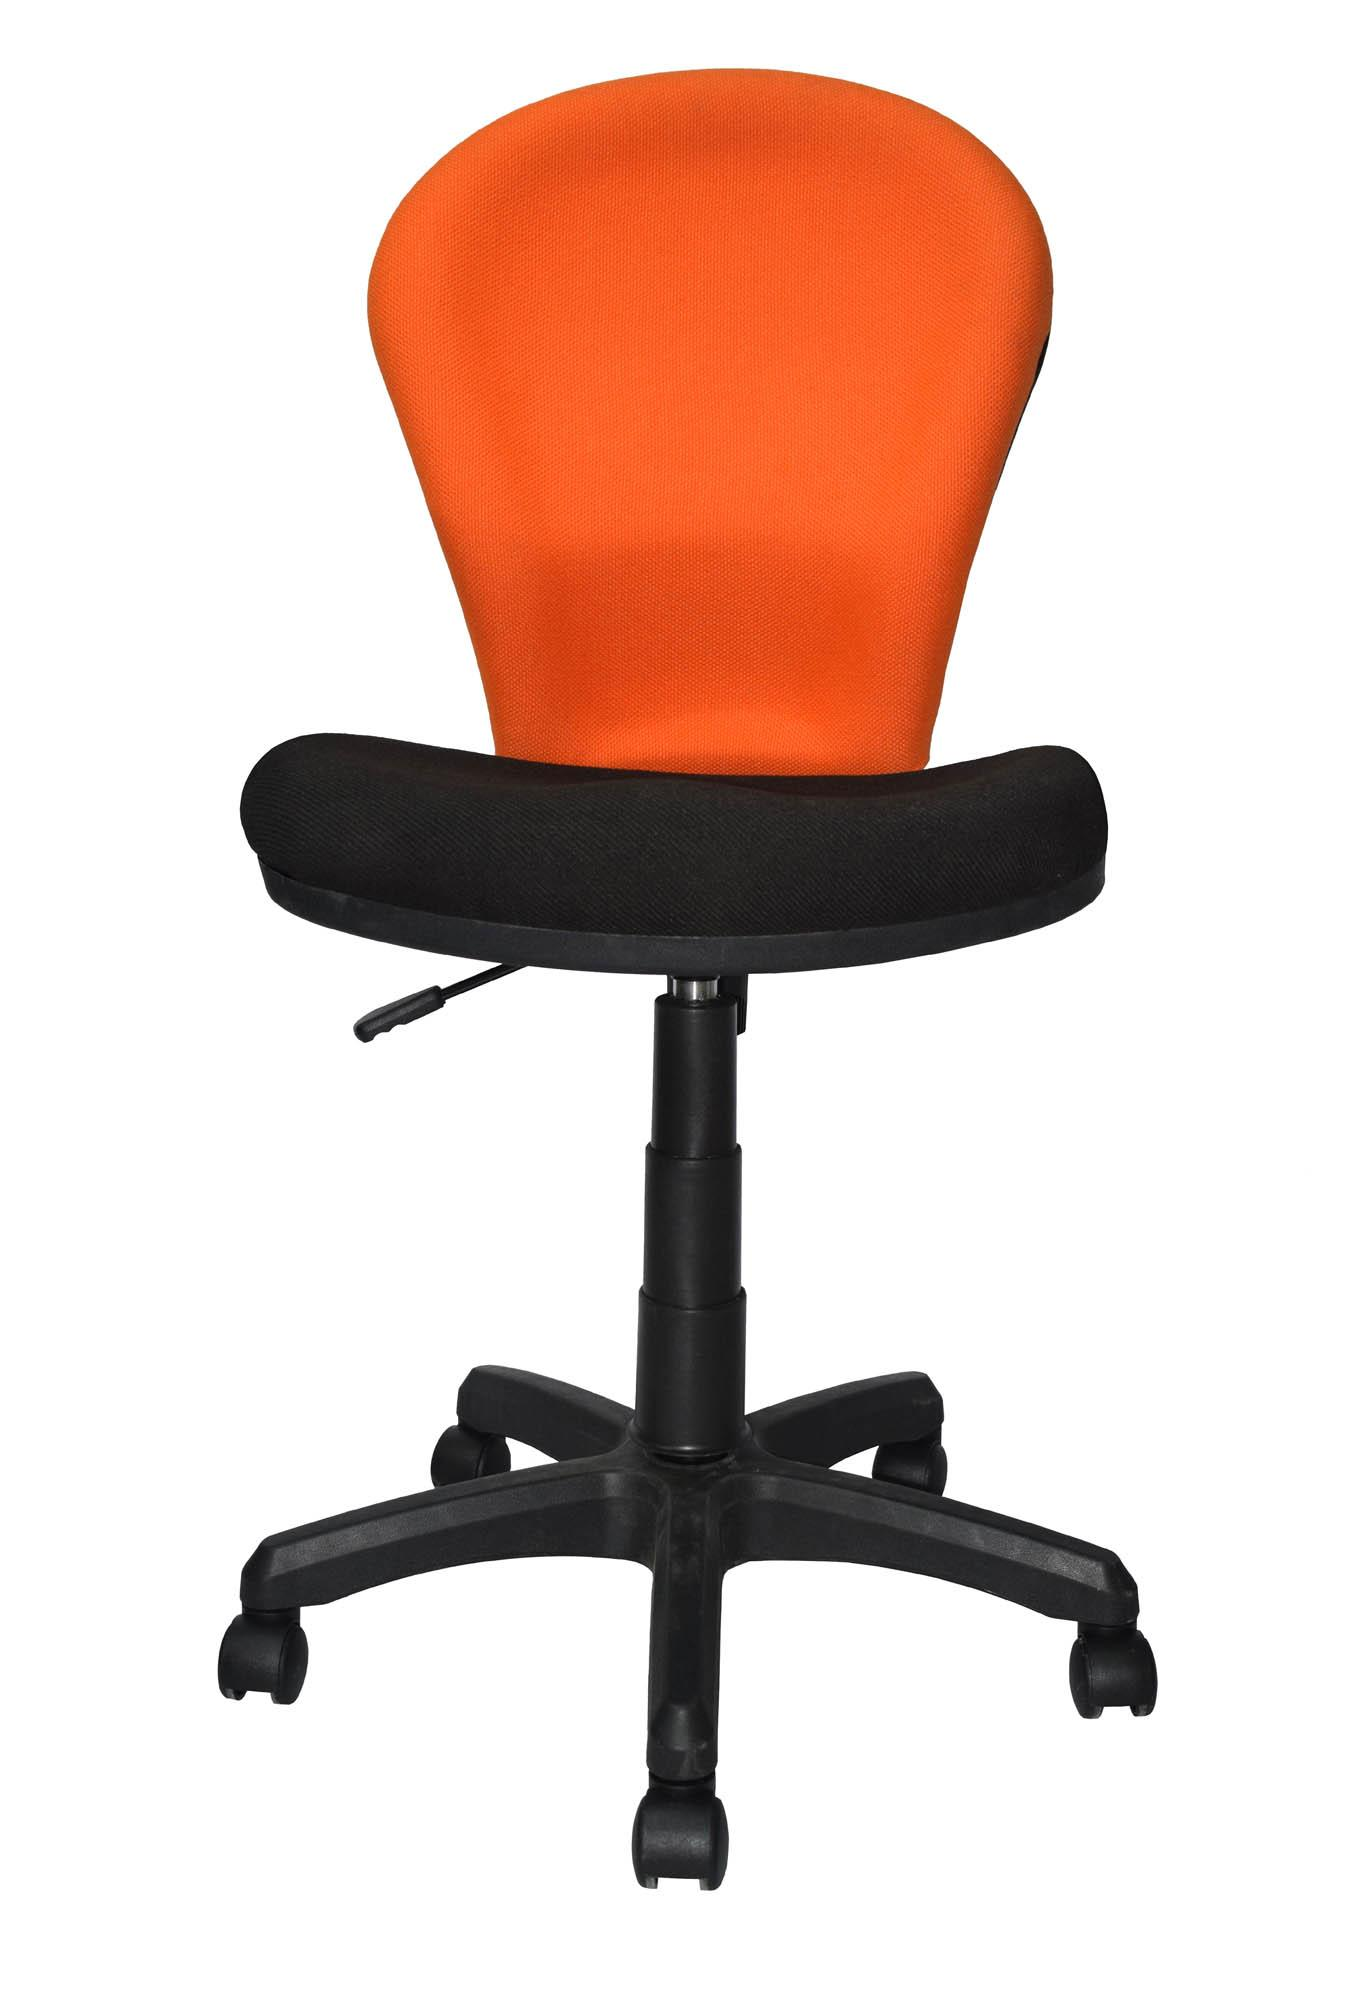 Ergonomic Computer Chair Without Arms Made In Taiwan